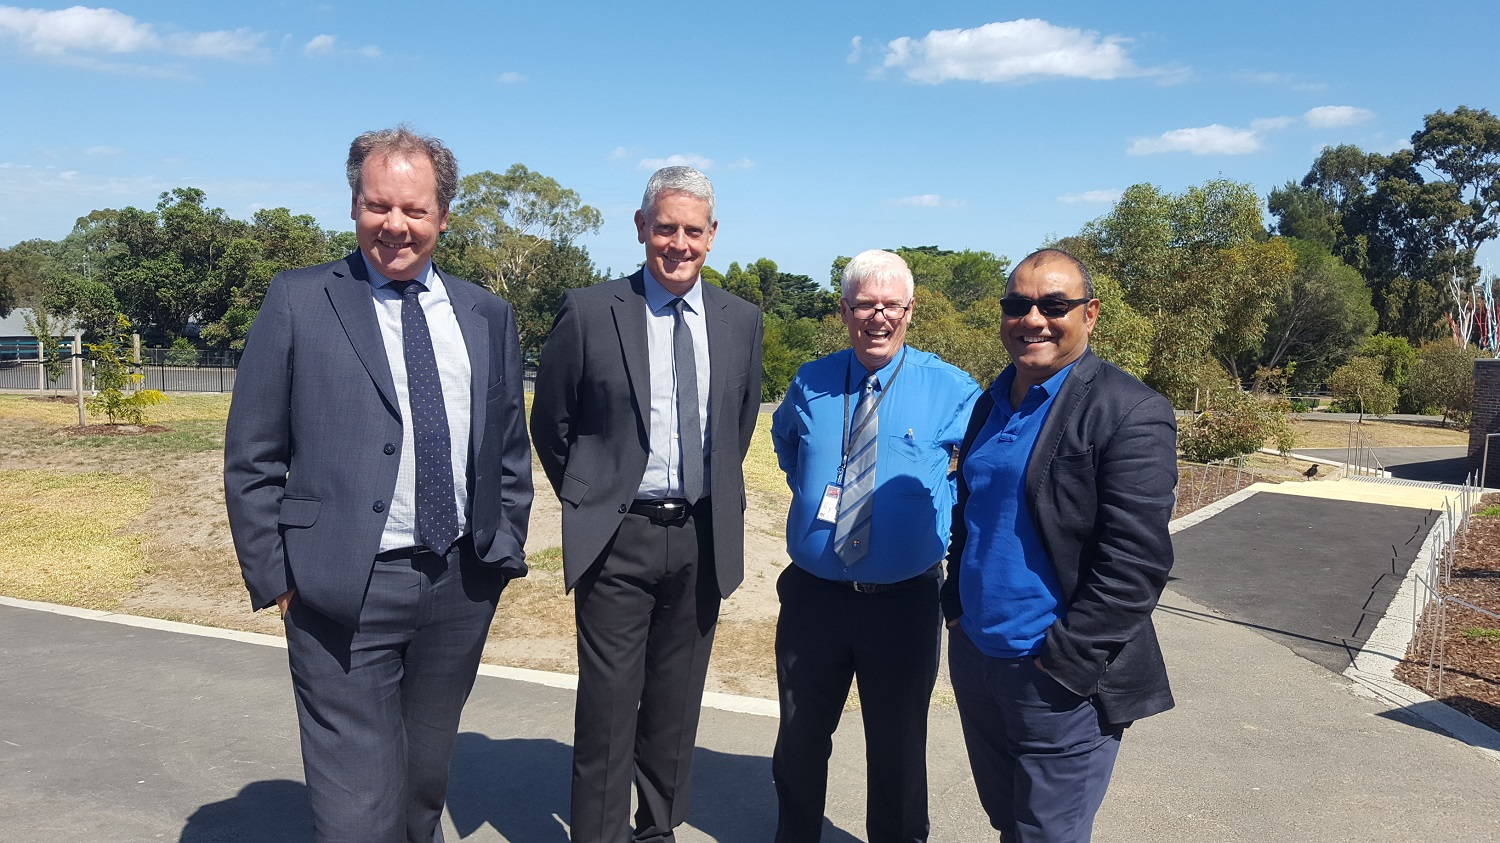 Anthony Baldasso, Steven Cortese, Peter Forbes, Aswhood's Facilities Manager & Dev Mistry